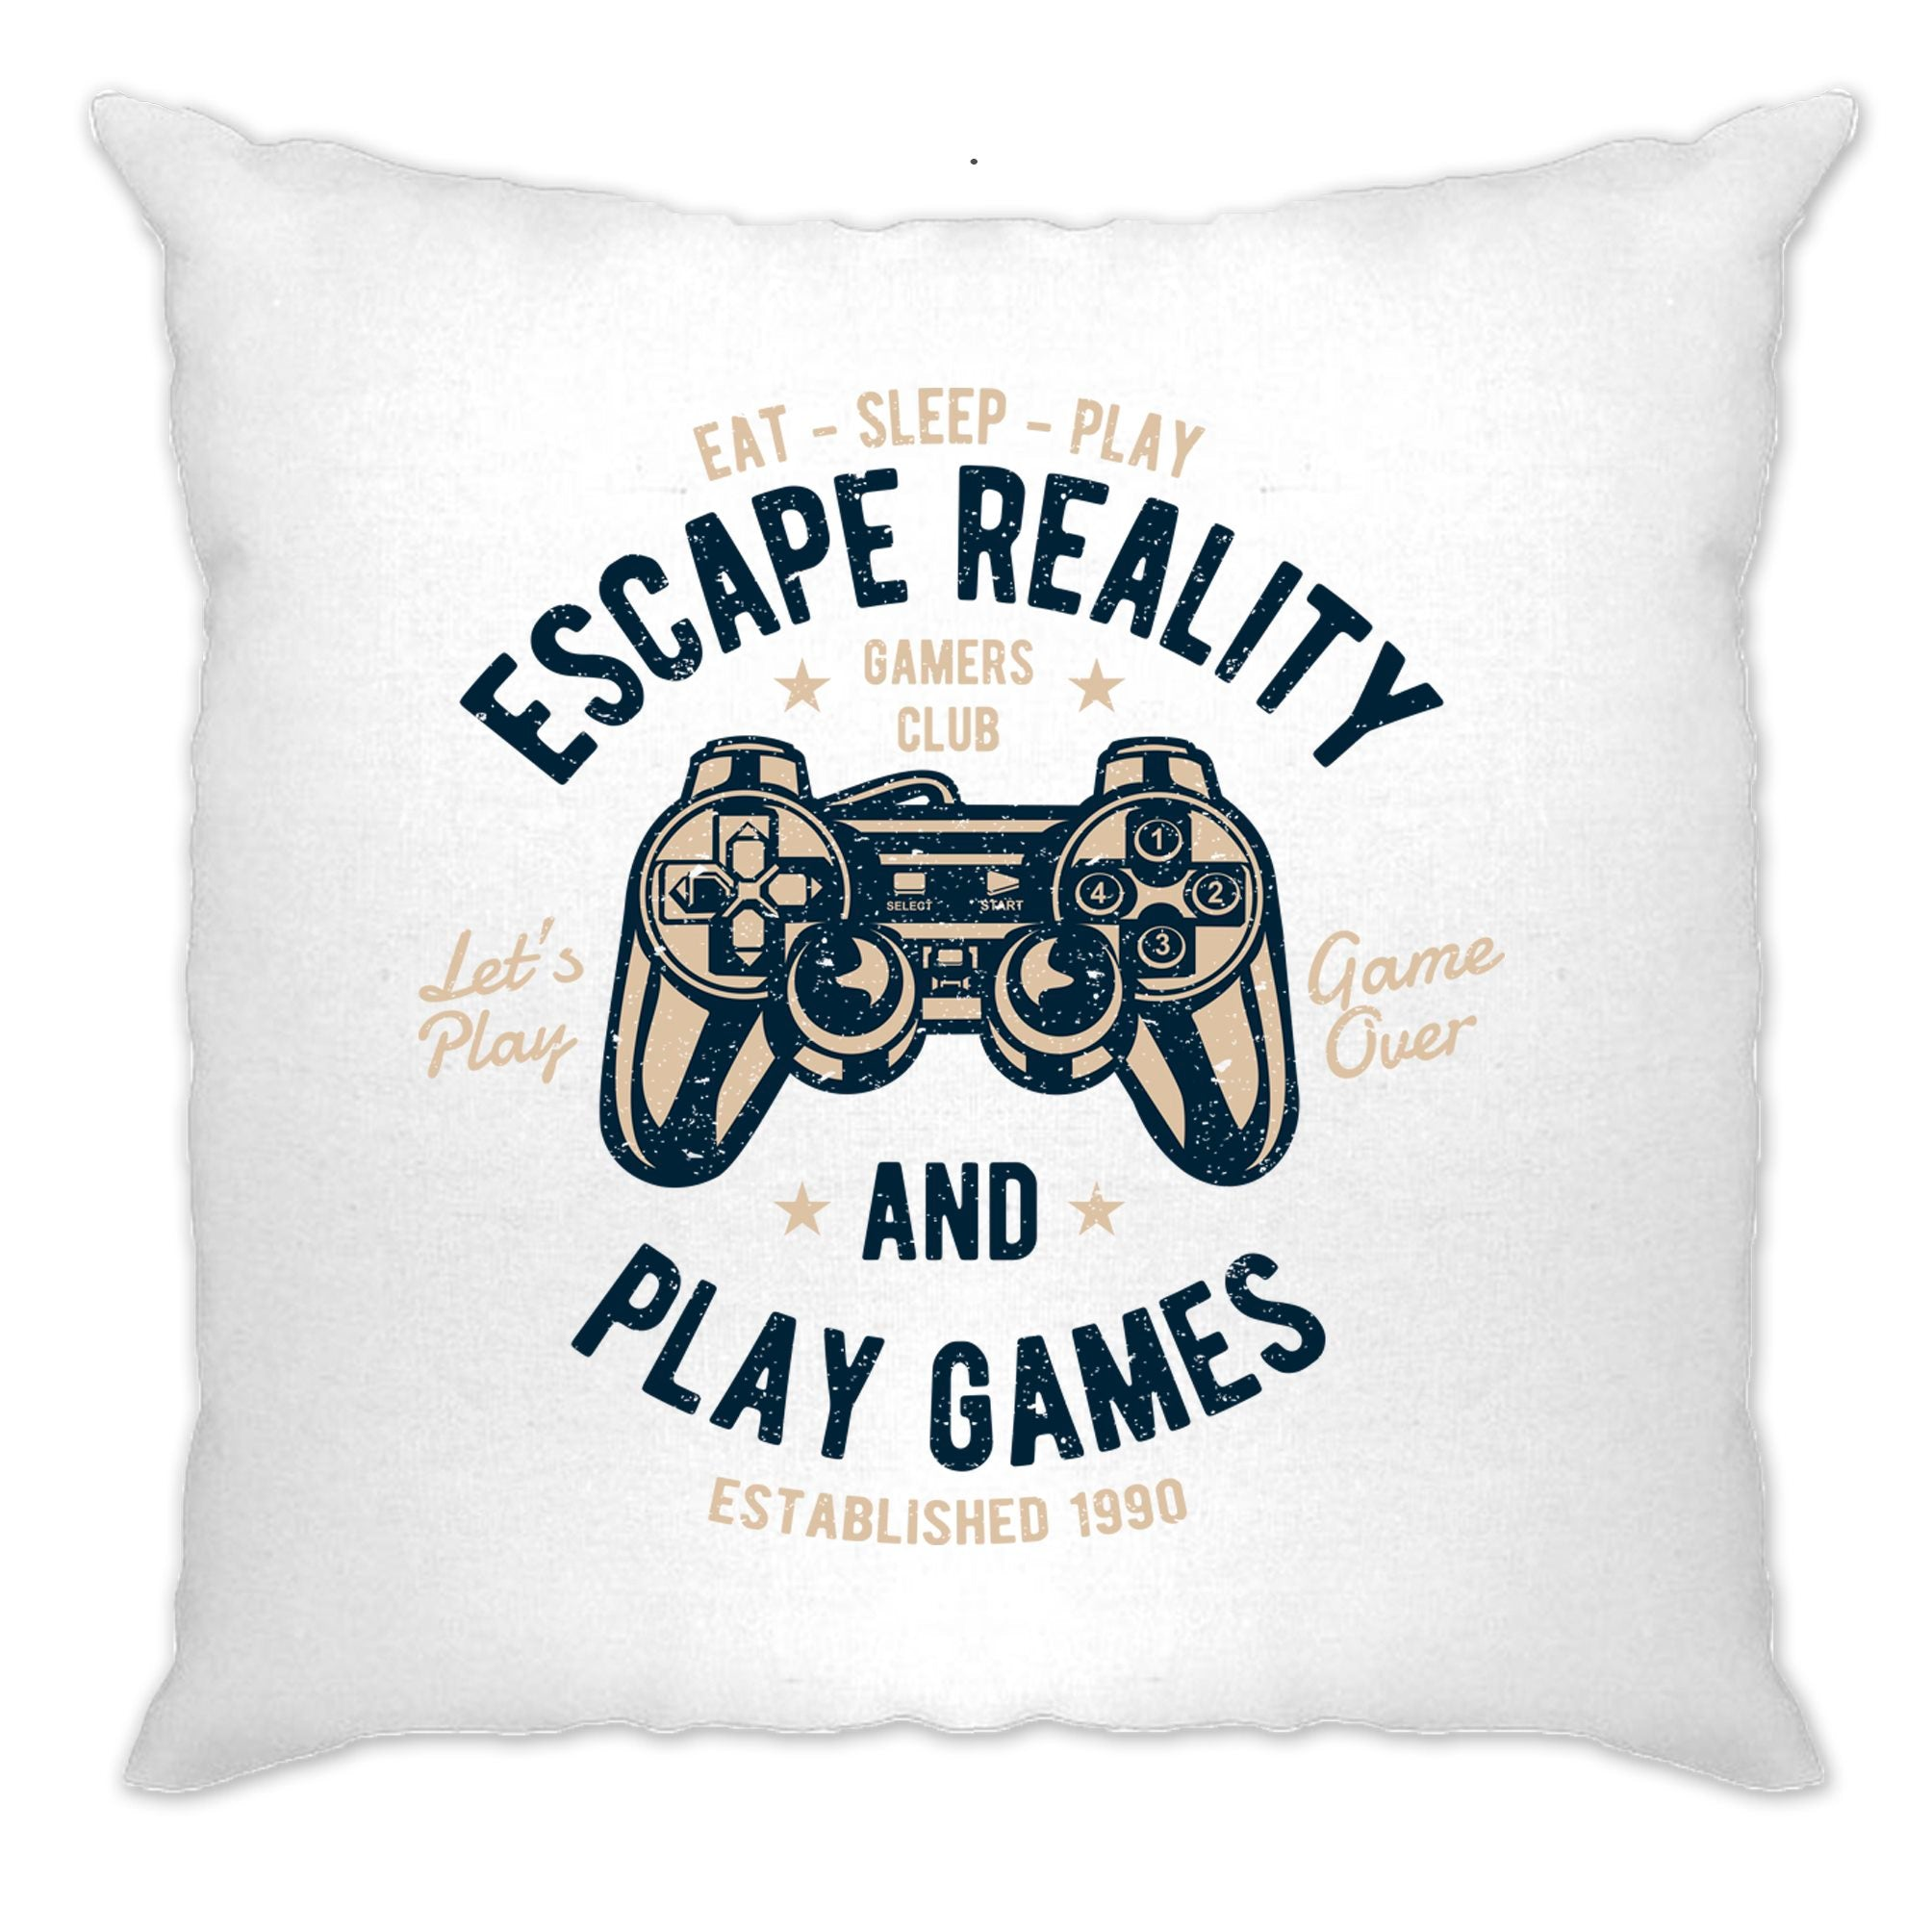 Retro Gamer Art Cushion Cover Escape Reality And Play Games